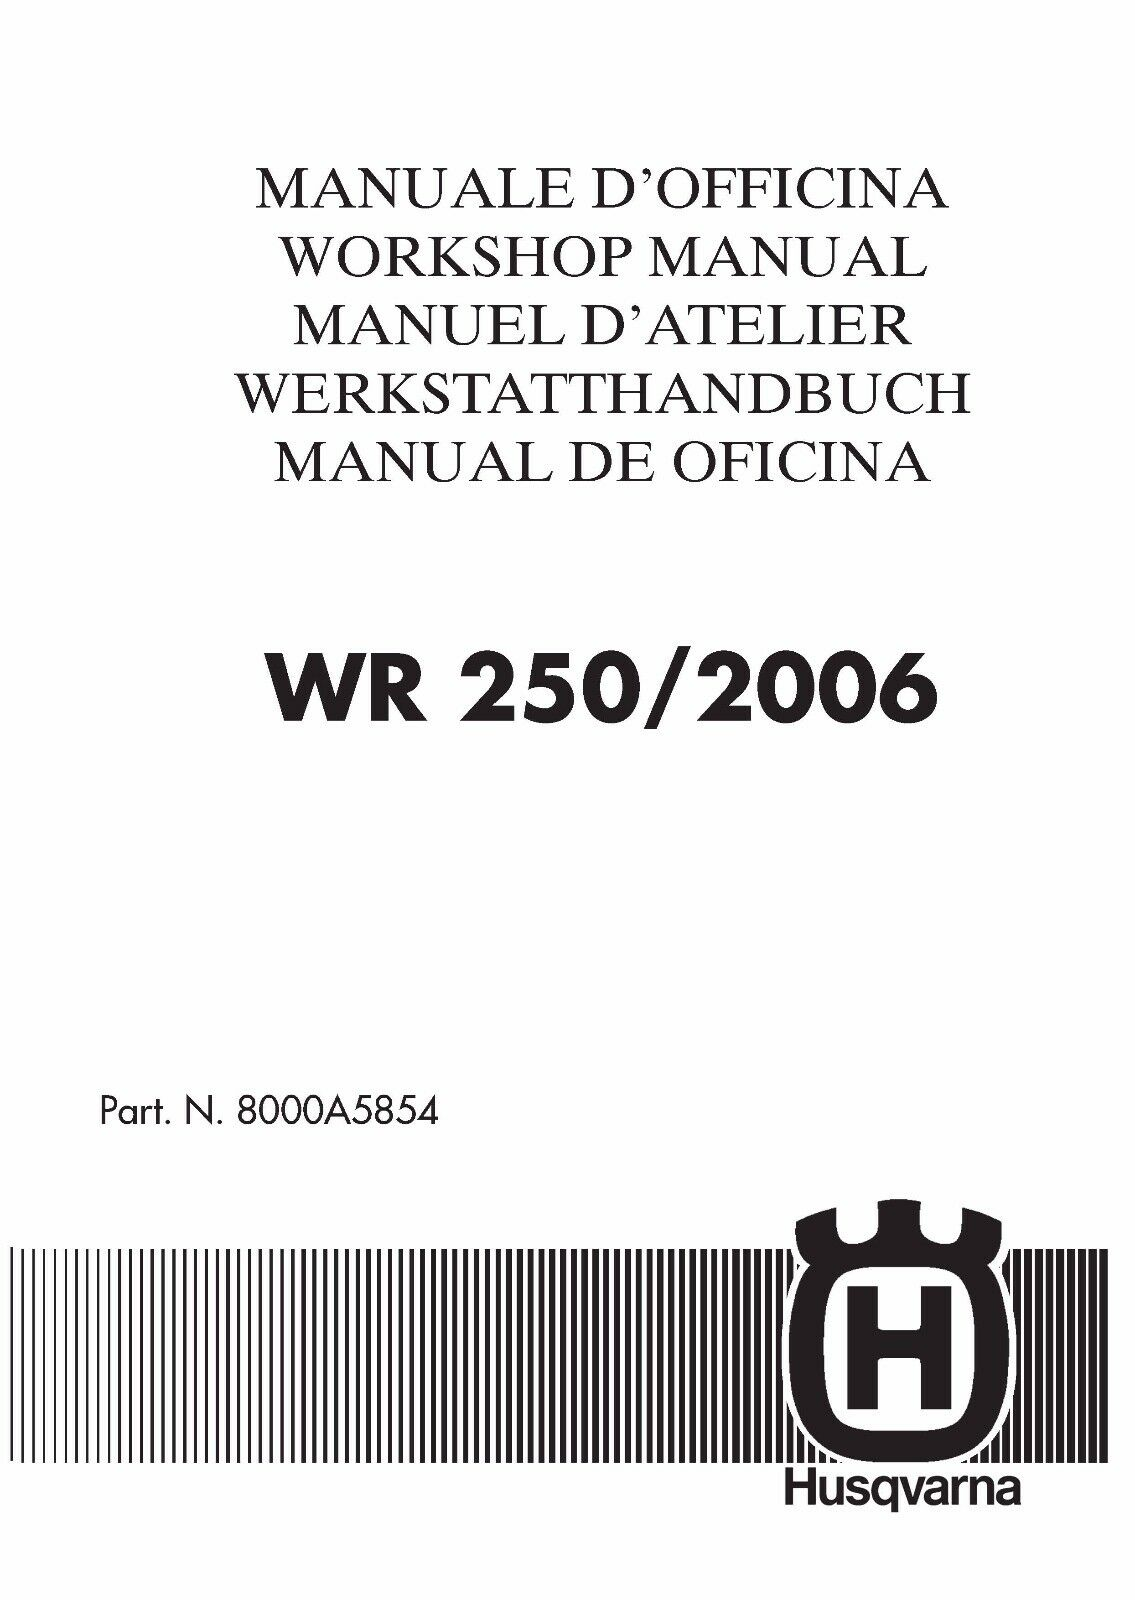 Husqvarna workshop service manual 2006 WR 250 1 of 12Only 1 available ...